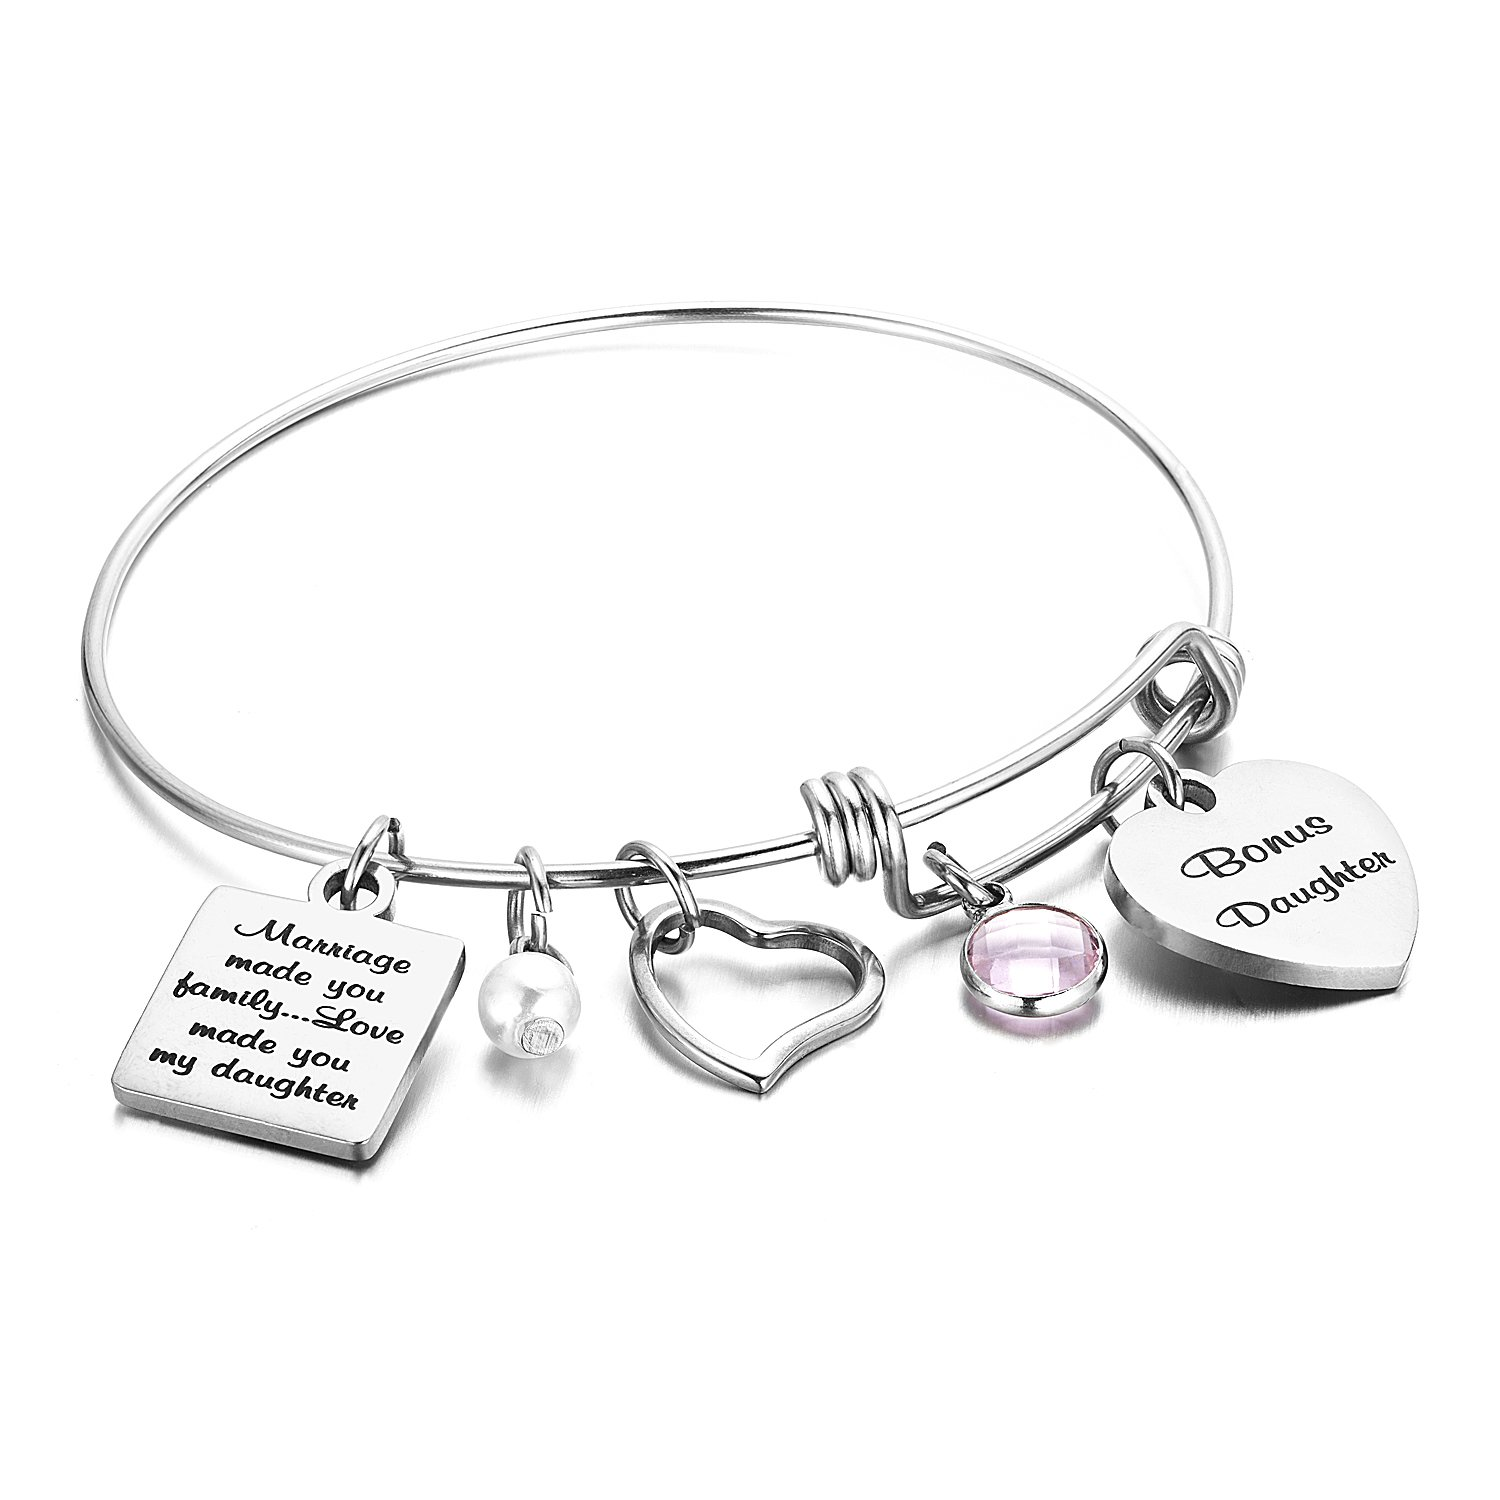 Step Daughter Bracelet, Daughter in Law Gifts Marriage made you Family Love made you My Daughter FAINOL